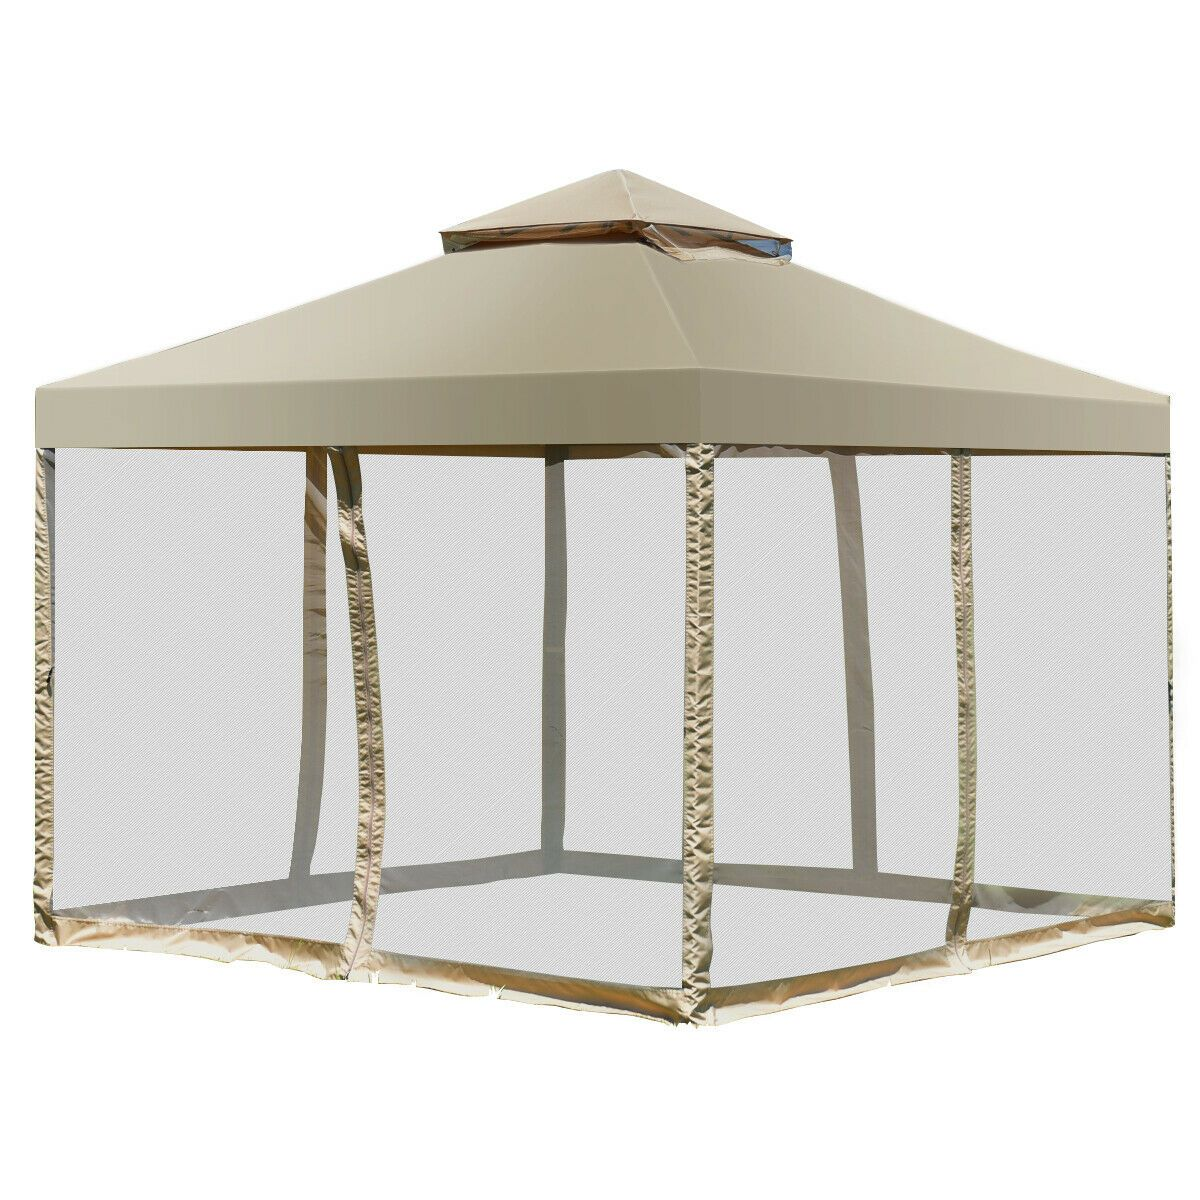 Costway Outdoor 2 Tier 10 X10 Gazebo Canopy Shelter Awning Tent Patio Garden Screw Free Structure Brown Walmart Com In 2020 Steel Gazebo Gazebo Canopy Awning Gazebo